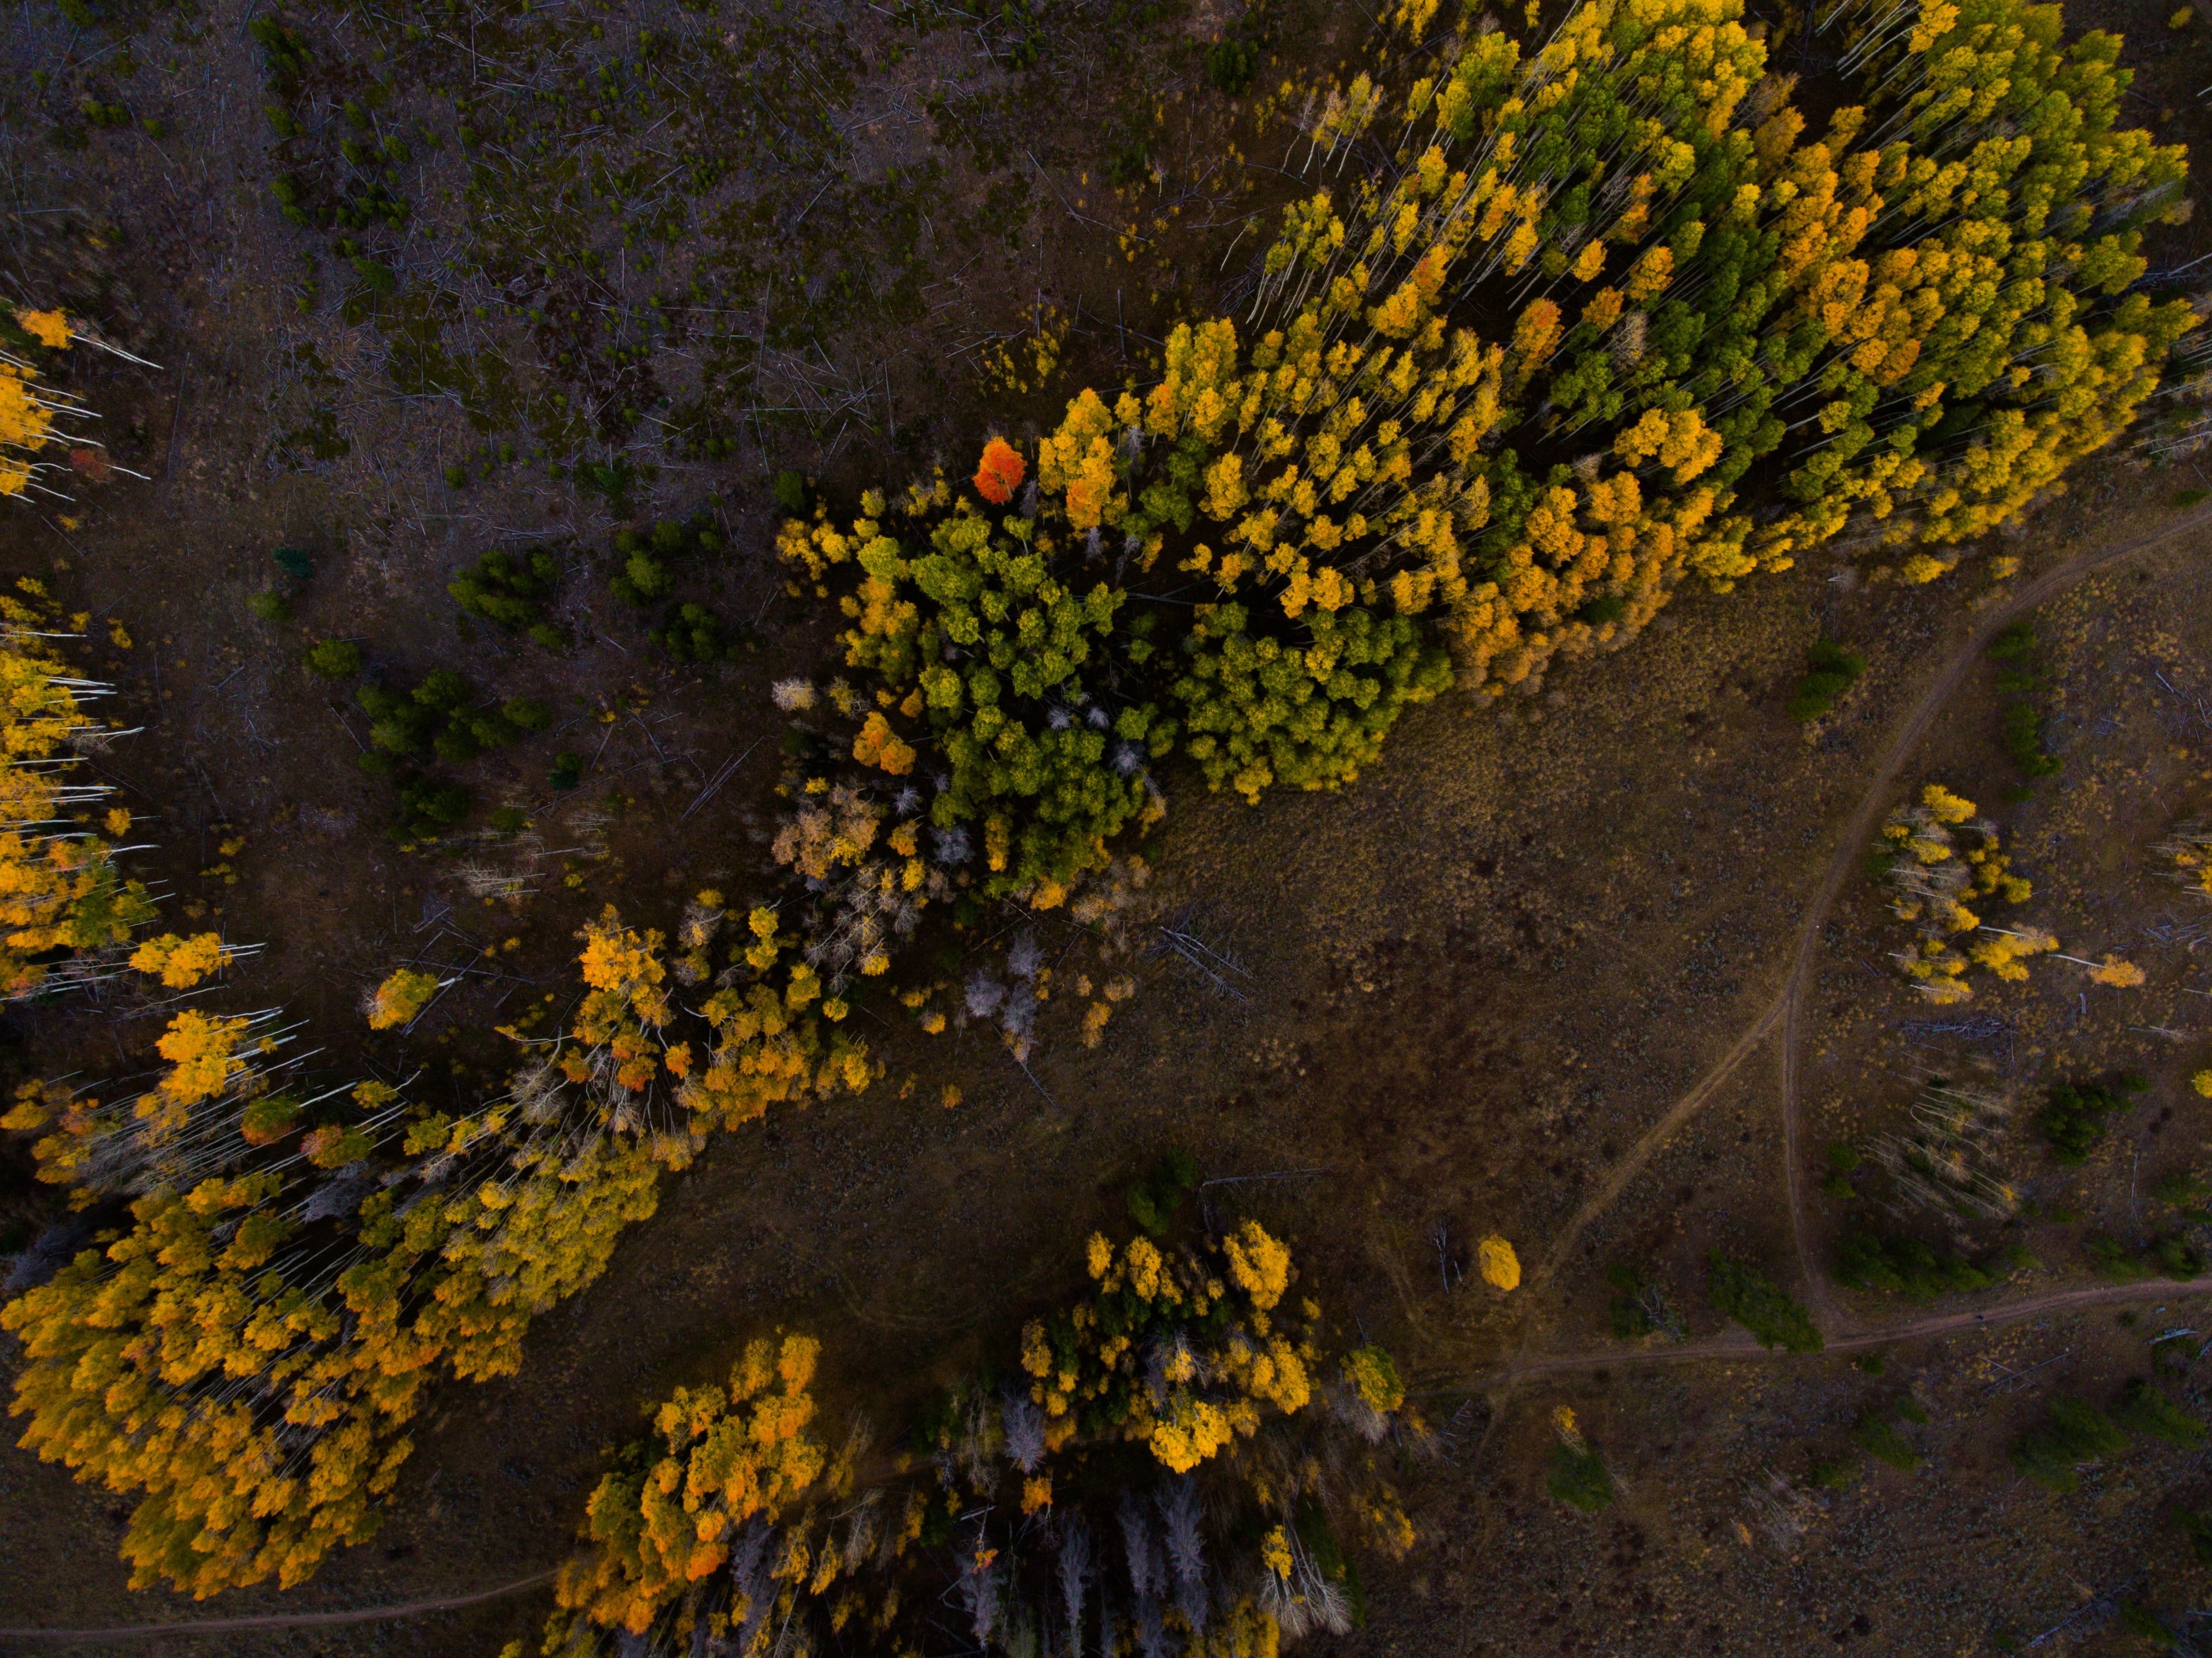 A drone shot of a forest with yellow and green trees